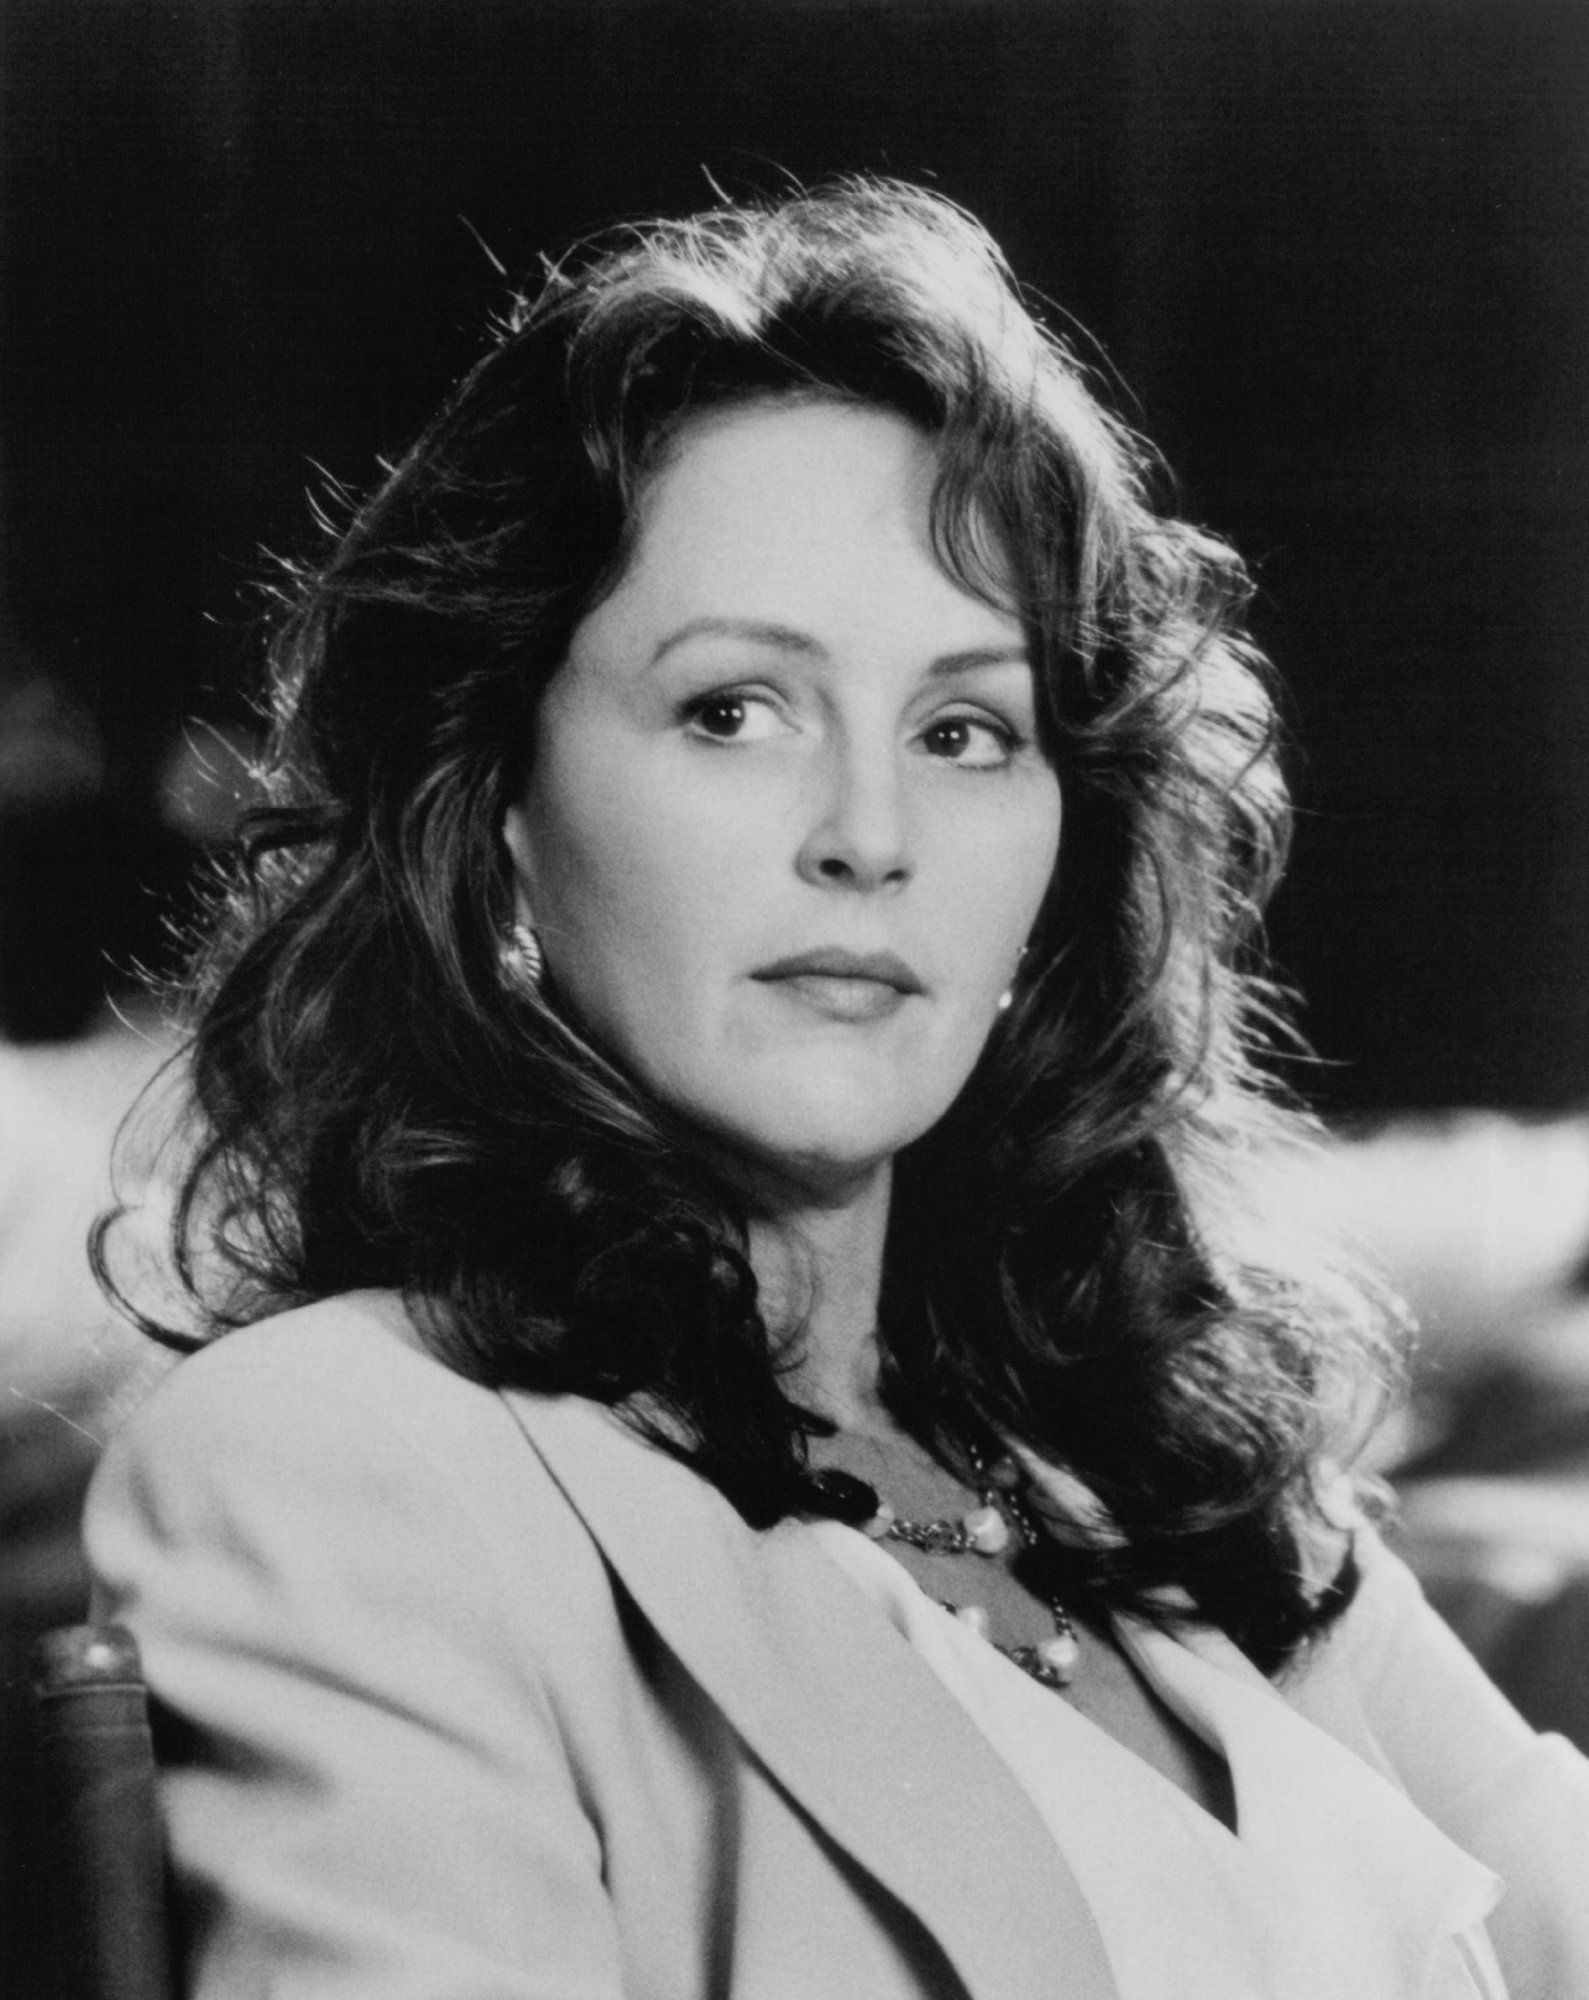 """Bonnie Bedelia (born: March 25, 1948, New York City, NY, USA) is an American actress. She began her career in theatre and during 1960s starred in the CBS daytime soap opera, Love Of Life, before making her movie debut in The Gypsy Moths. She is known for the movies """"Die Hard"""" (1988) and """"Die Hard 2"""" (1990)."""